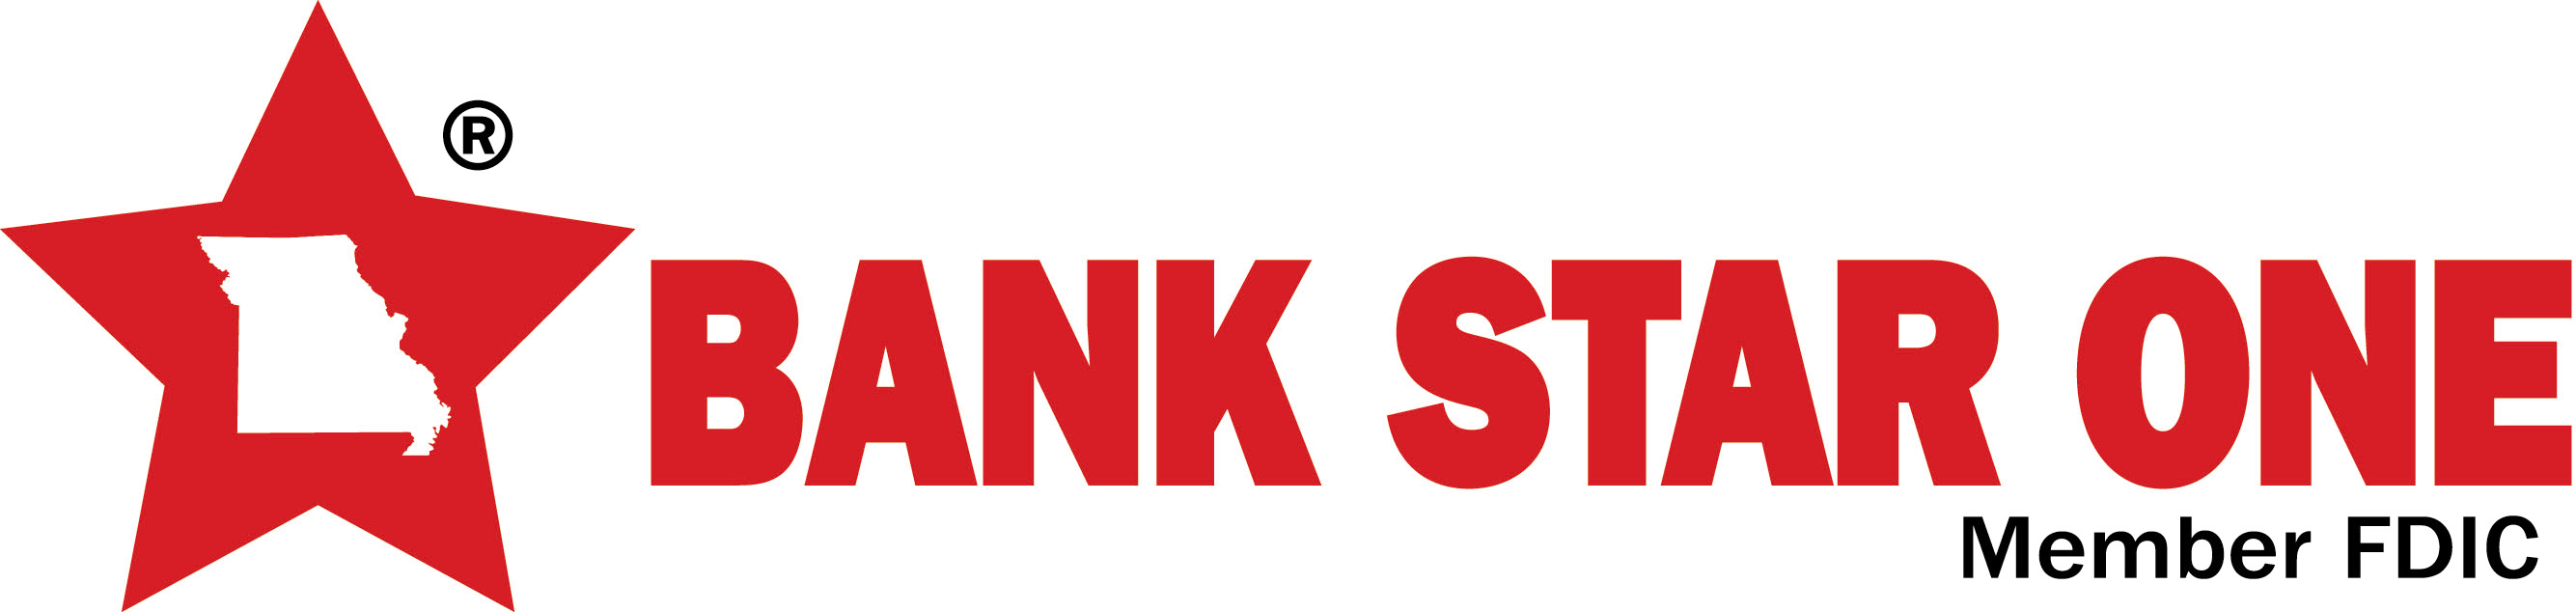 Bank Star One